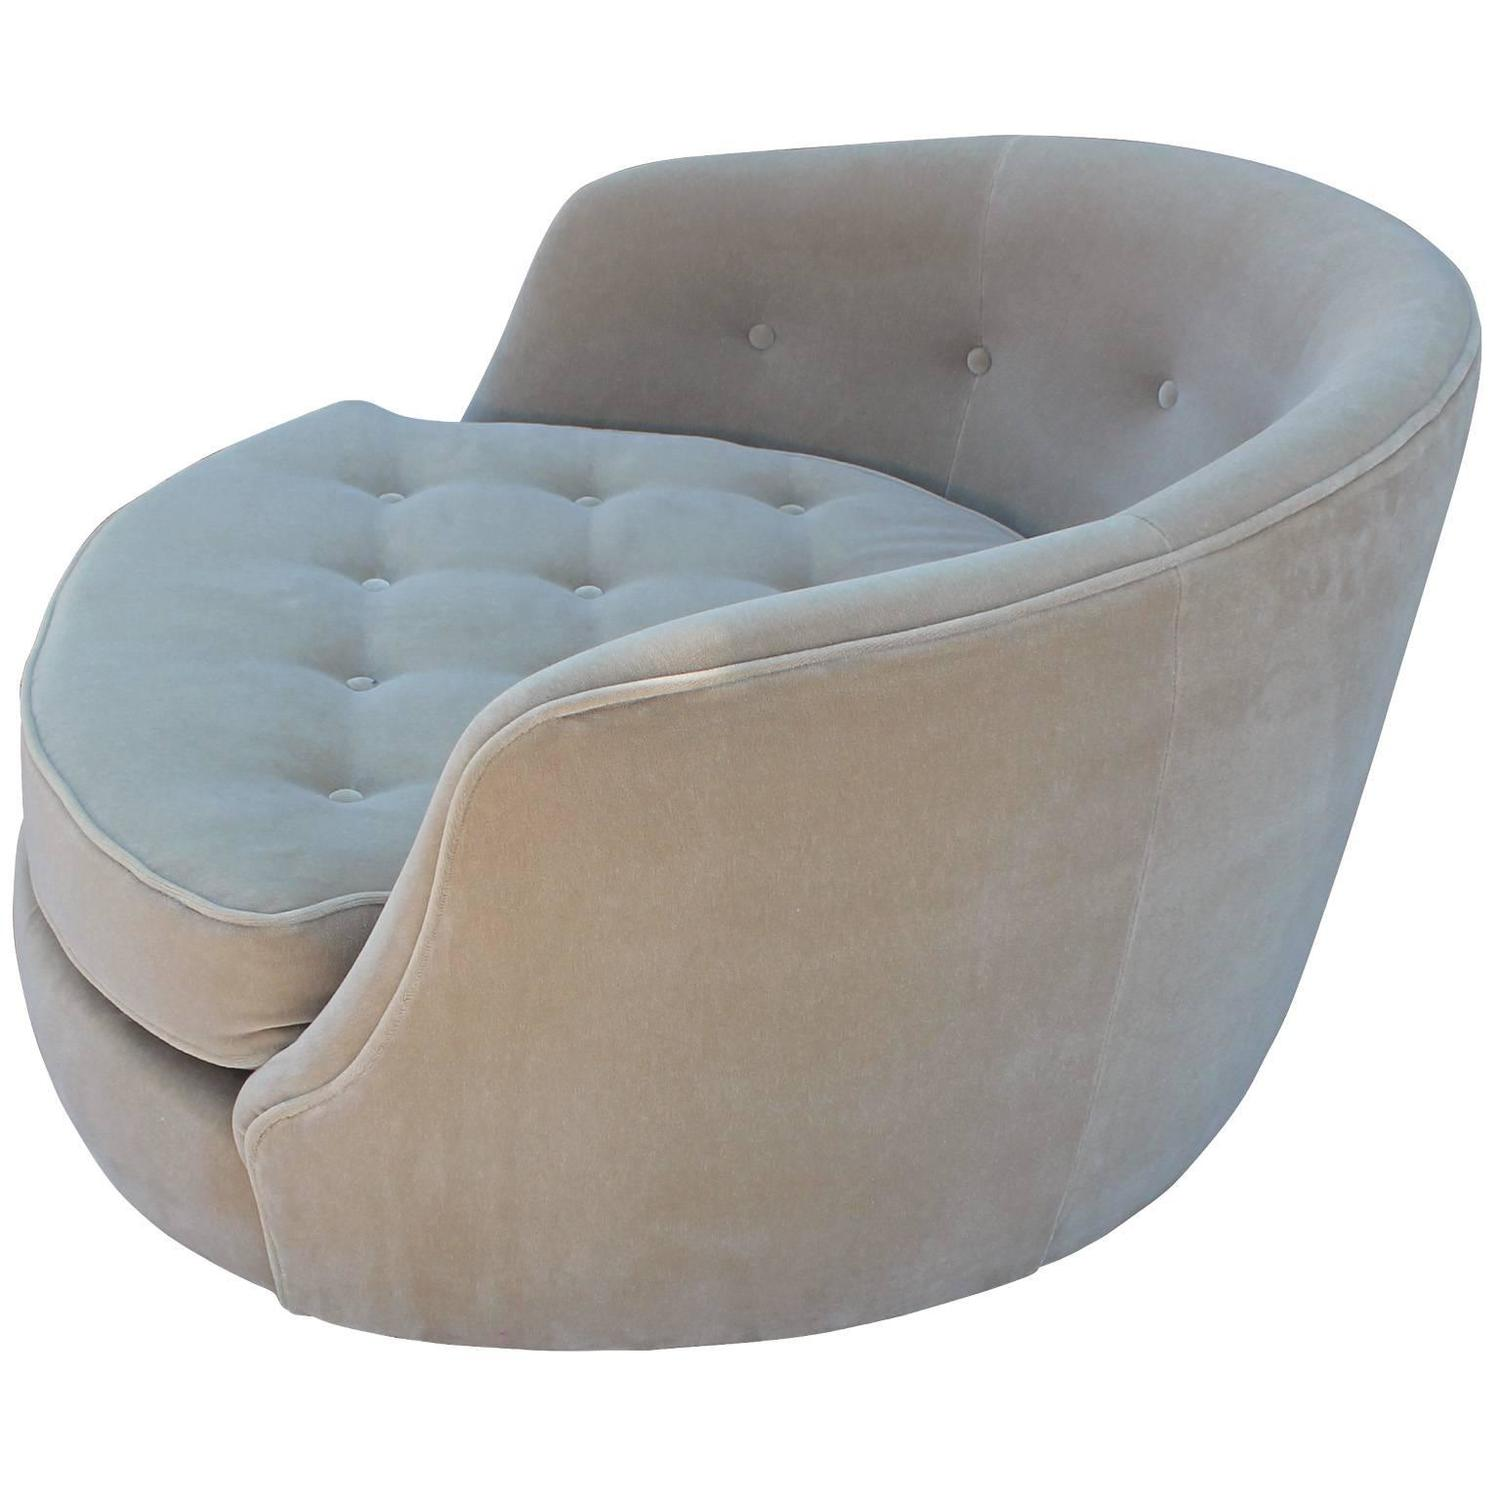 Magnificent Milo Baughman Circle Swivel Lounge Chair in Mohair at 1stdibs